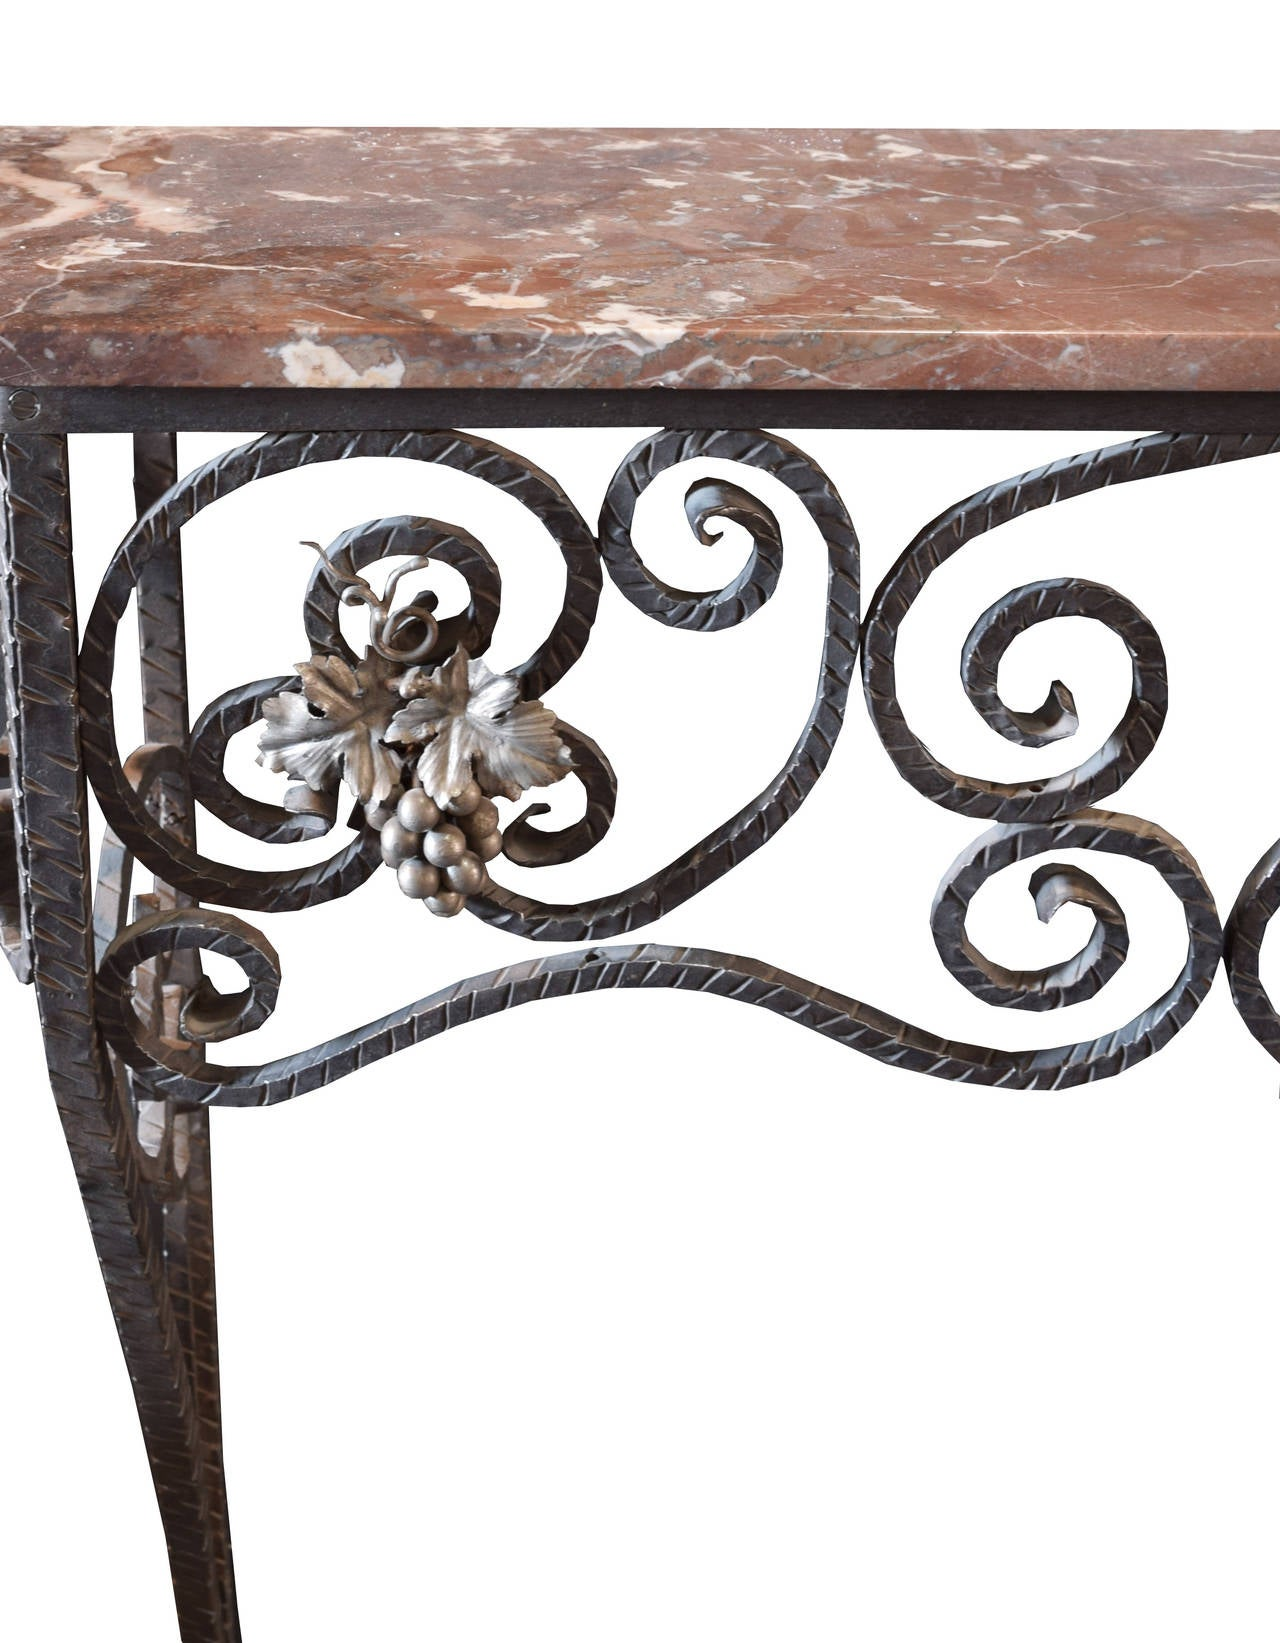 Fer forge console table with marble top for sale at 1stdibs for Table fer forge jardin